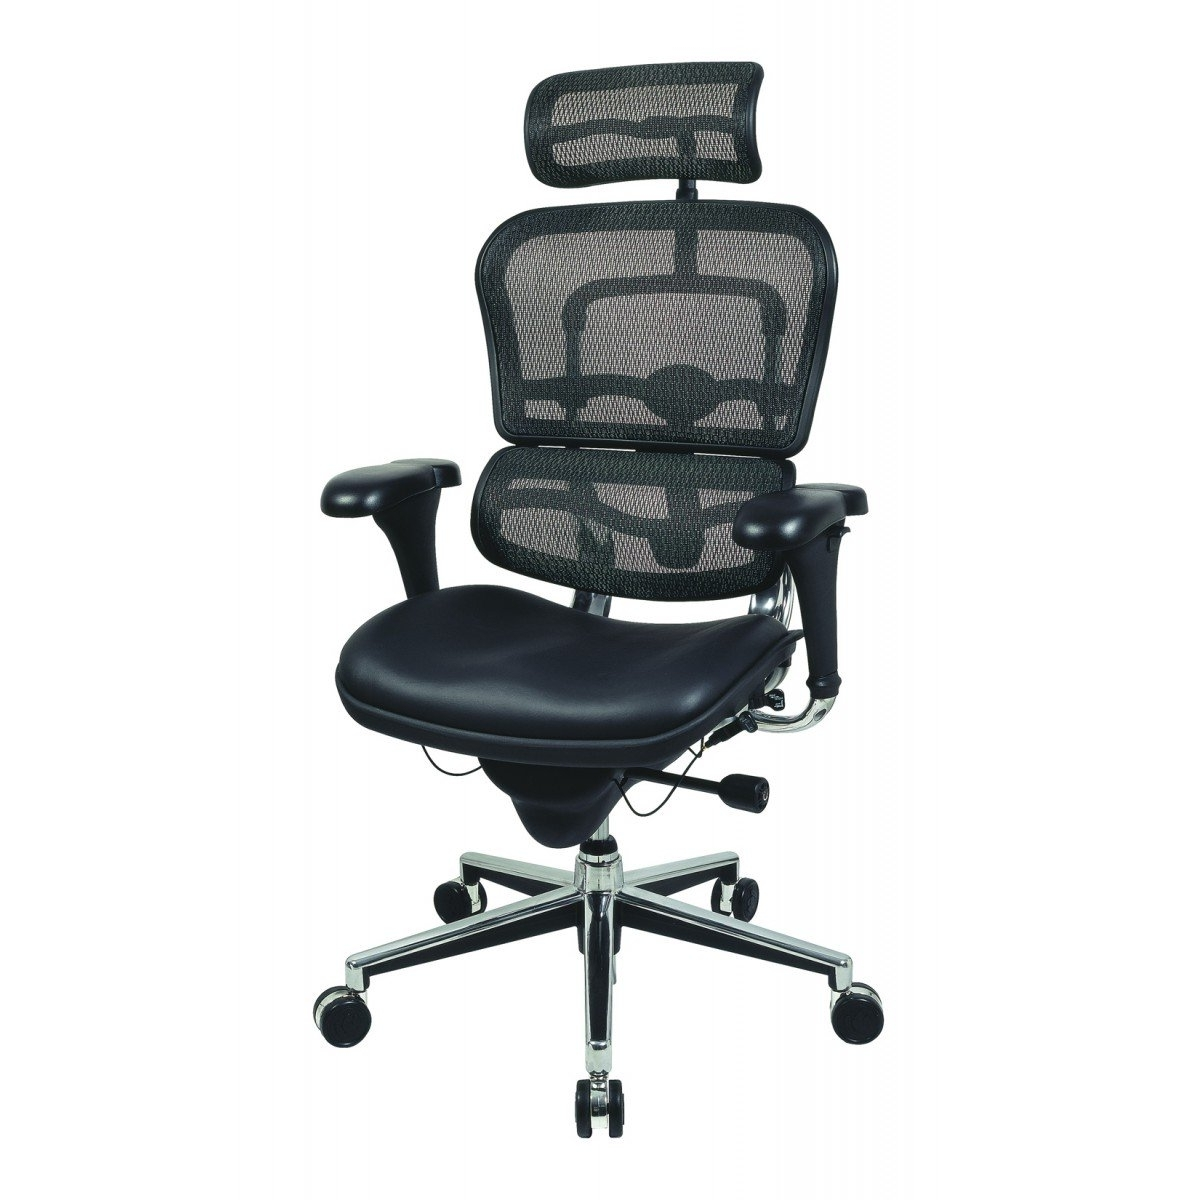 Widely Used Executive Office Chairs With Headrest Regarding Eurotech Ergohuman – Mesh Office Chair With Leather Seat And (View 20 of 20)